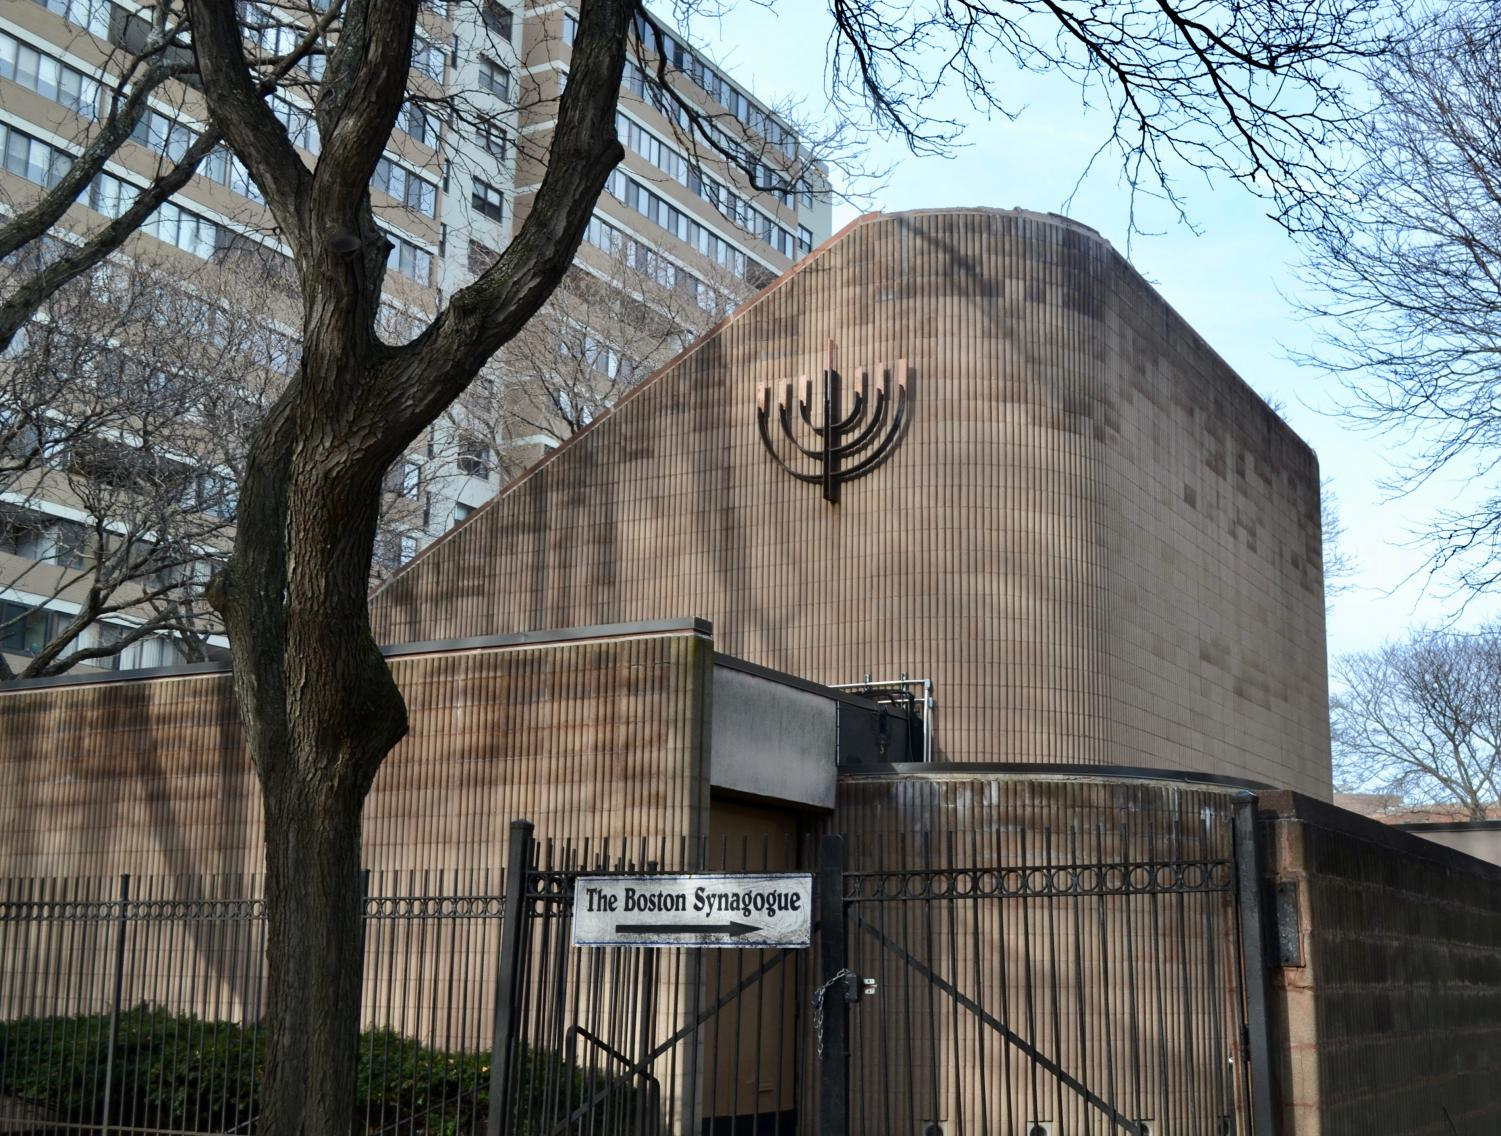 The Boston Synagogue, located on 55 Martha Road. The synagogue has tightened its security due to concerns over rising anti-semitism.